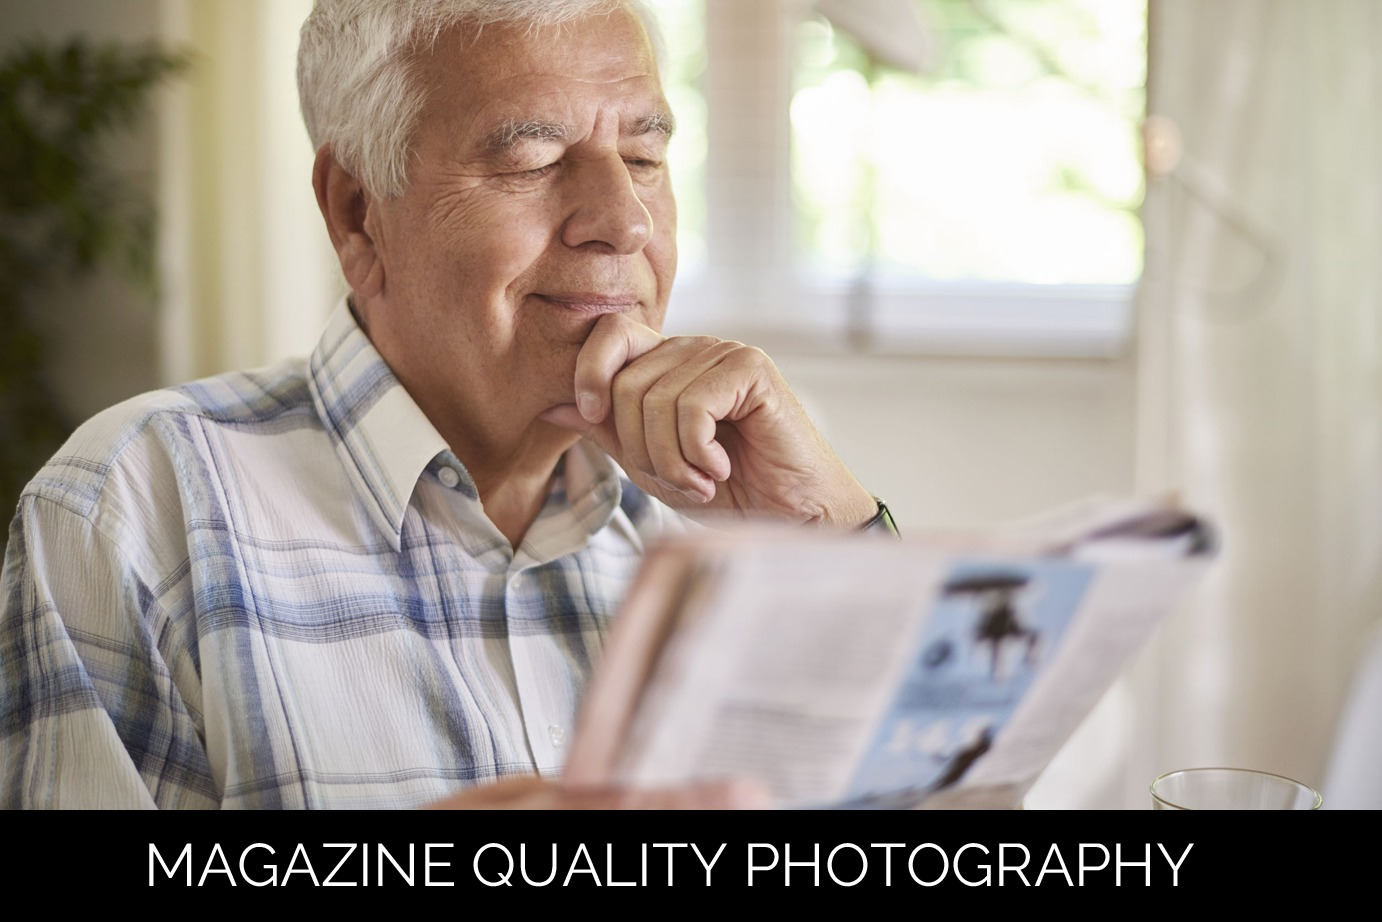 Magazine Quality Photography